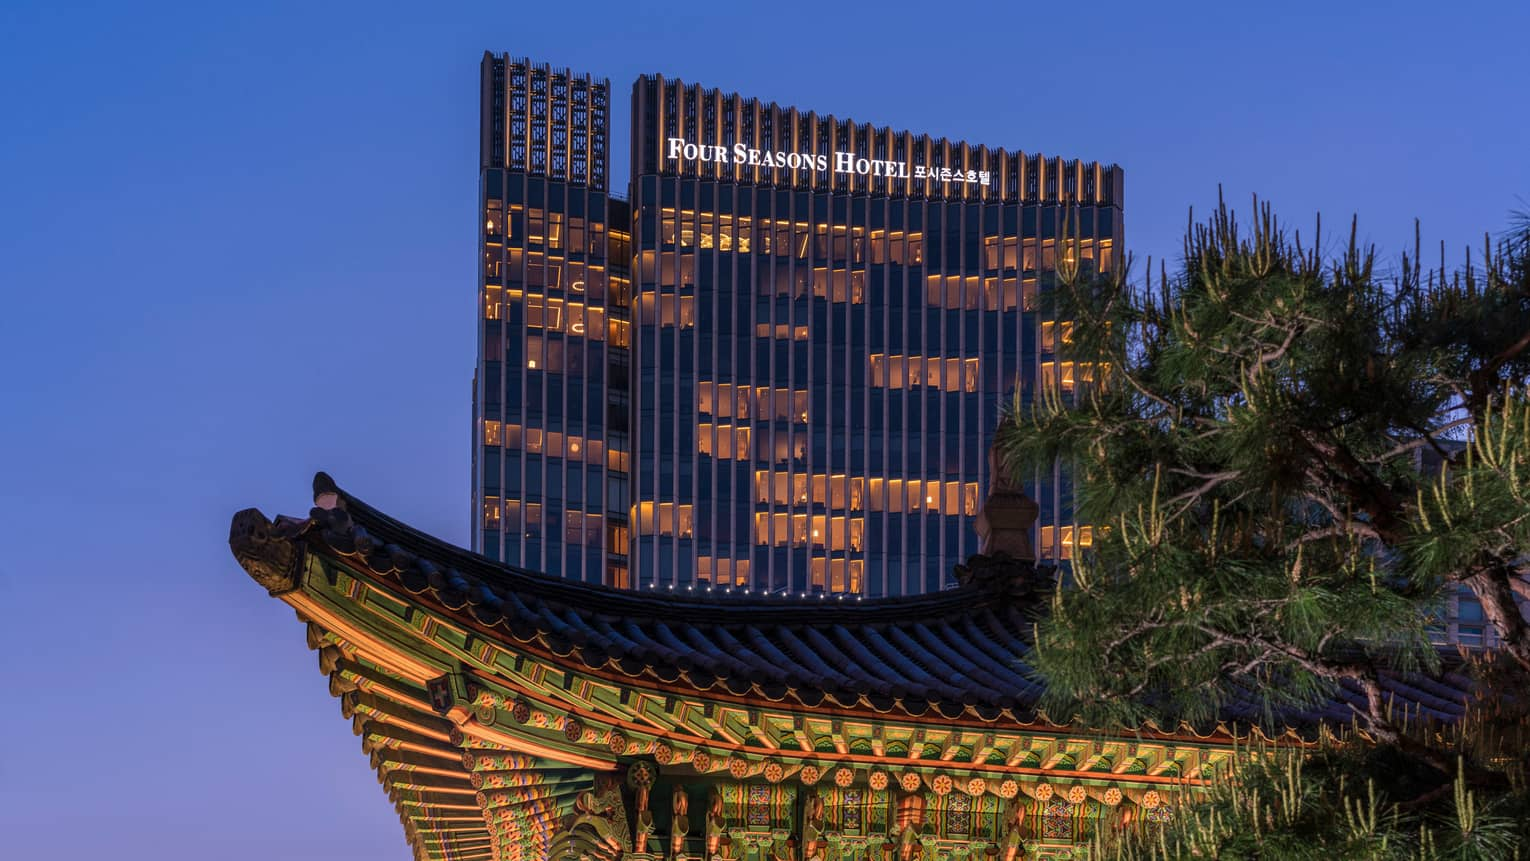 Four Seasons Hotel Seoul modern glass high rise with lights towering over traditional building at night